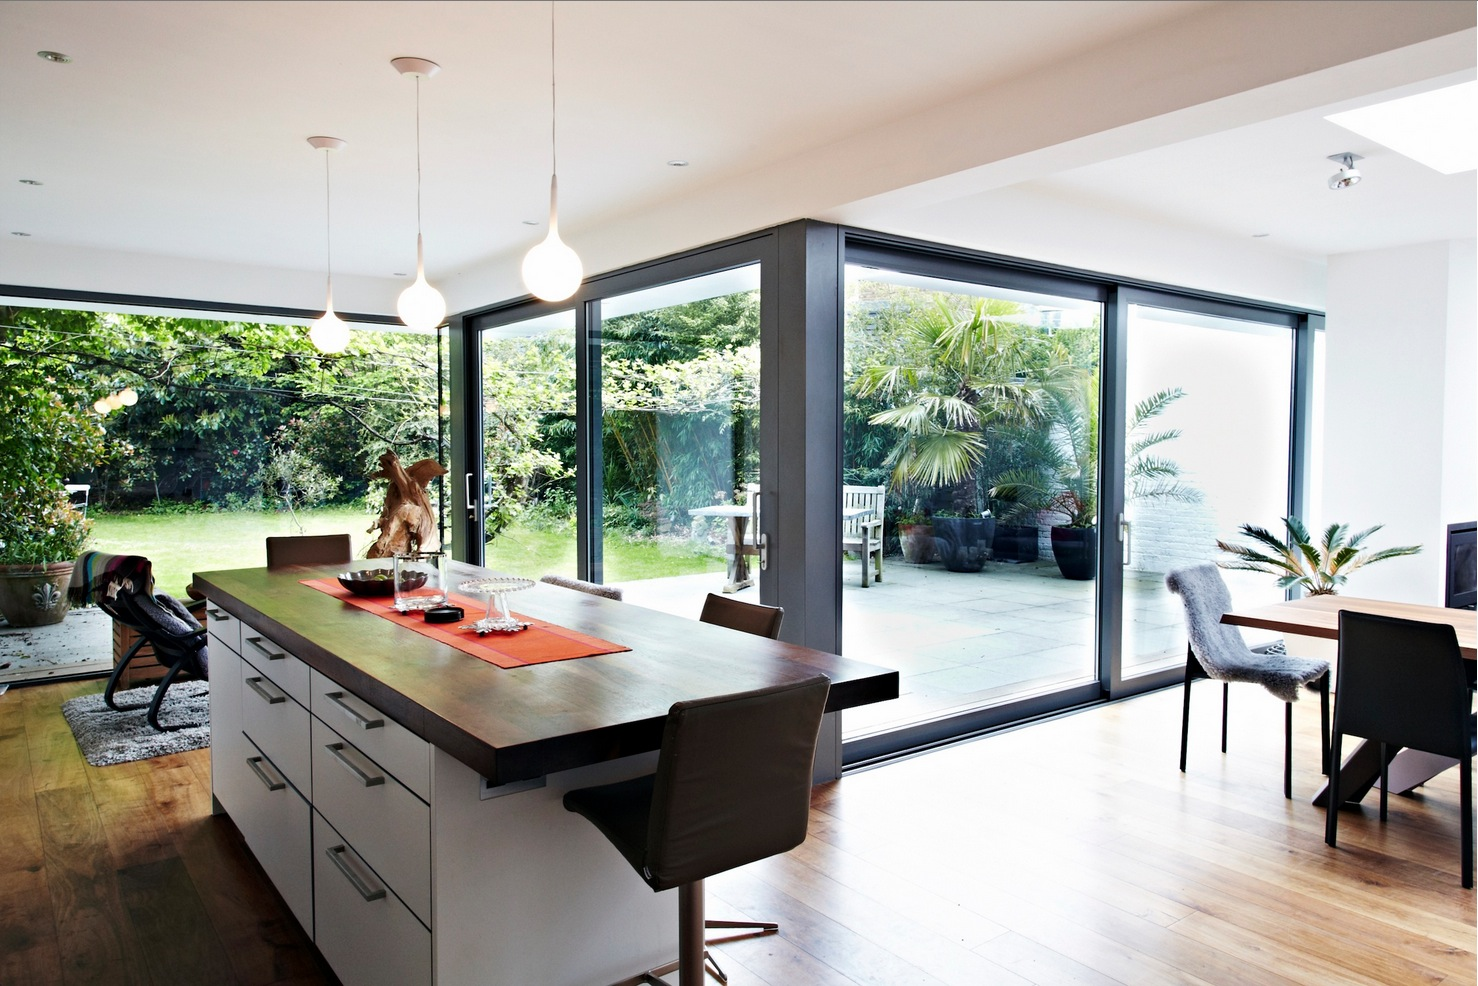 extension design ideas kitchen garden room photo - 7